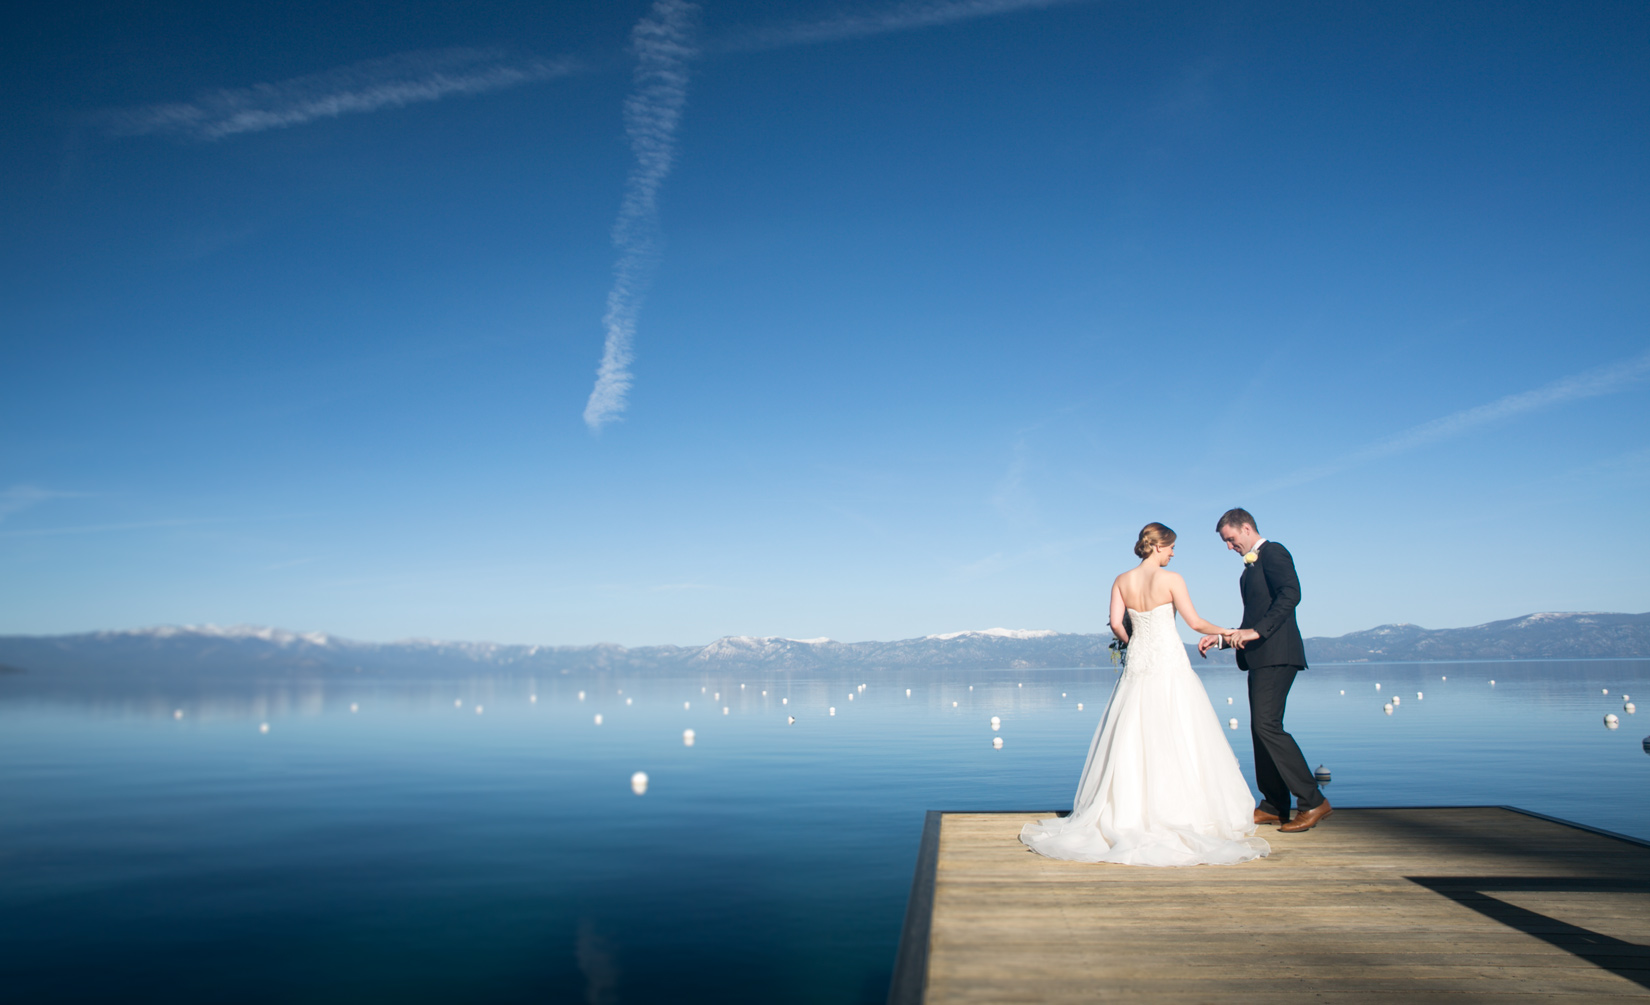 West Shore Cafe                                Jen and MilesLake Tahoe spring wedding on the West shore of Lake Tahoe with the ceremony on the pier and reception inside the beautifully ornate restaurant .